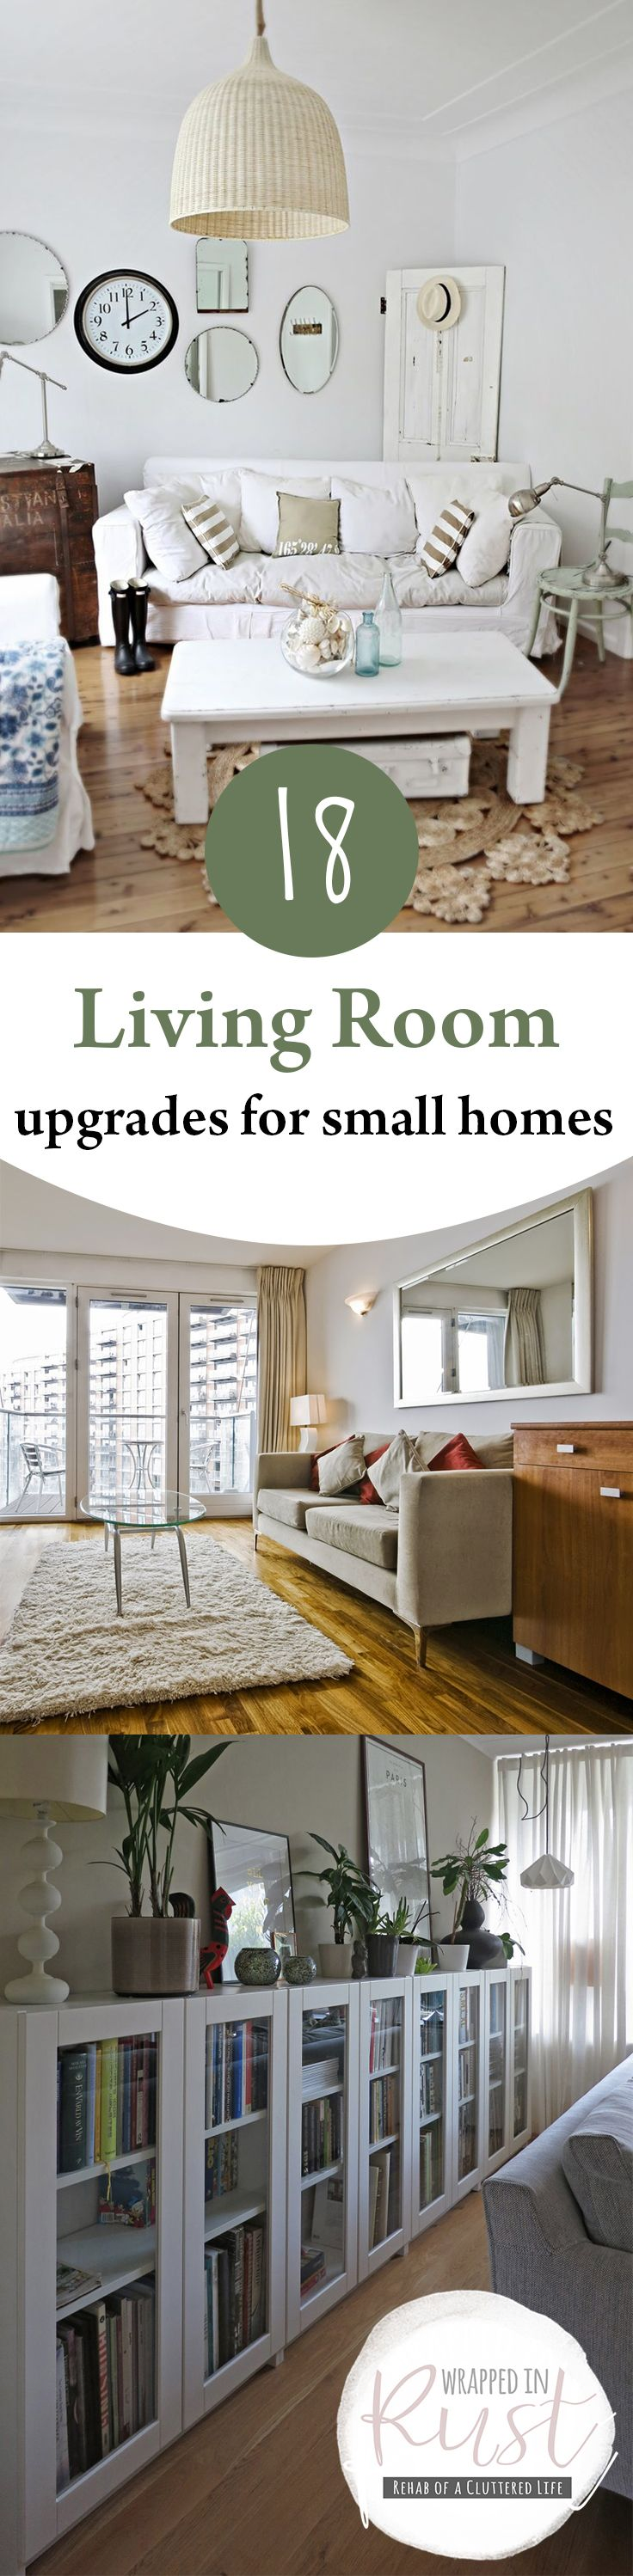 223 best home decor ideas images on pinterest furniture makeover 18 living room upgrades for small homes page 20 of 20